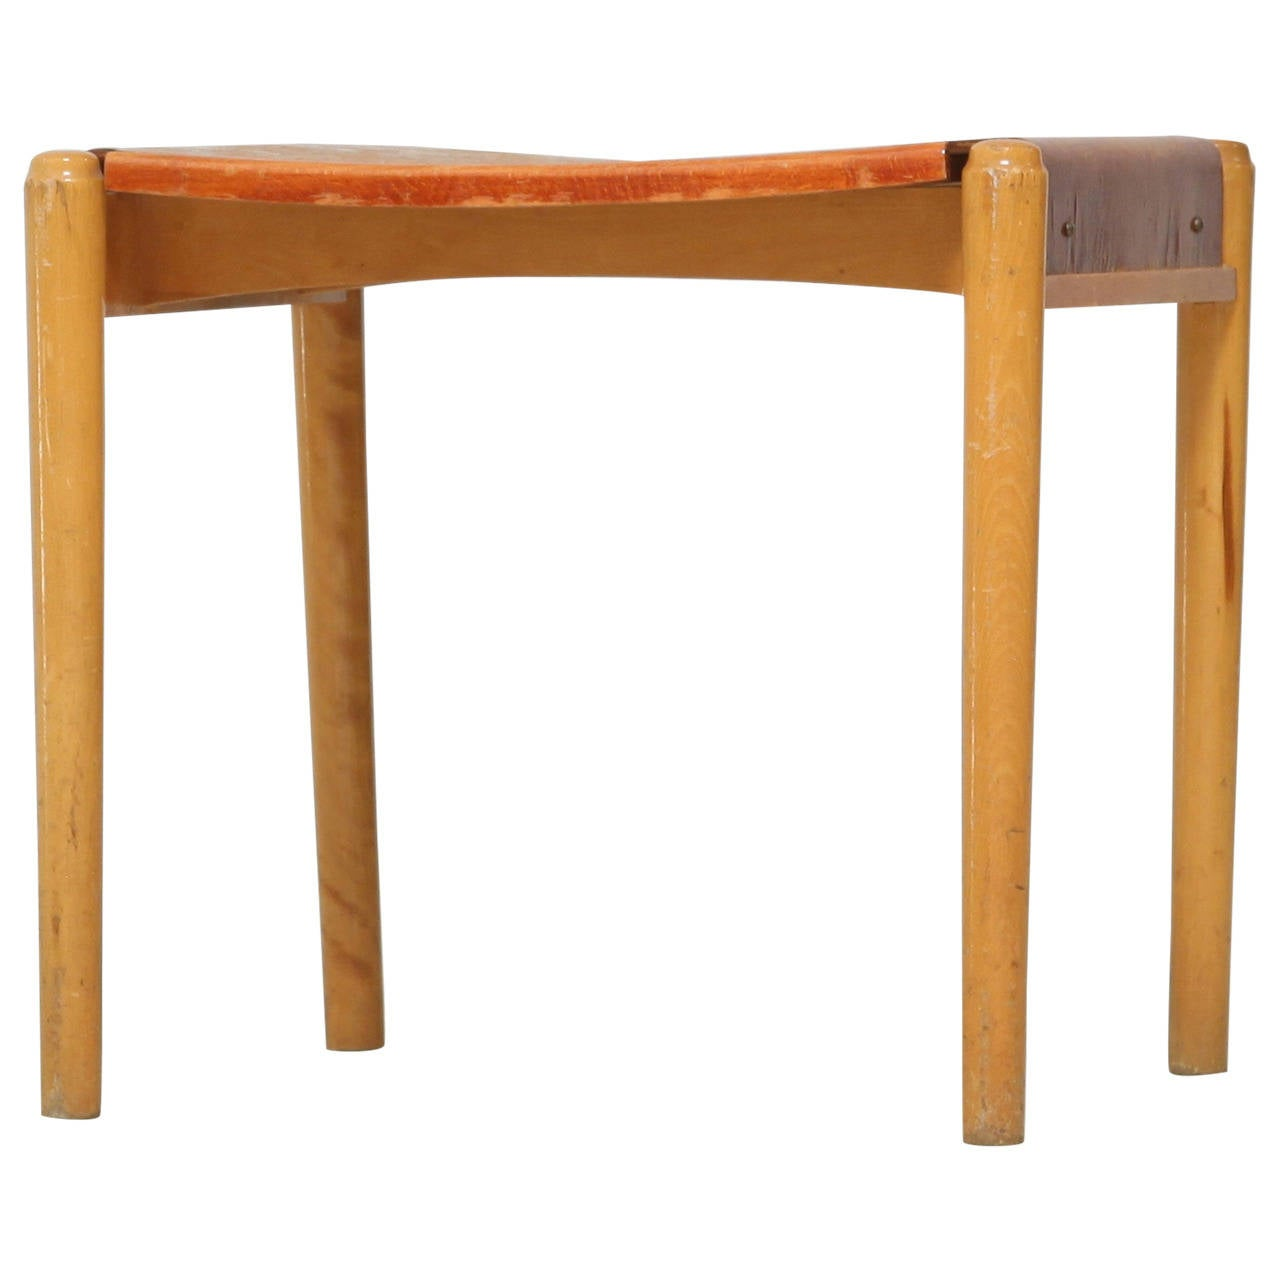 Edsby Verken Wooden Curved Stool For Sale At 1stdibs